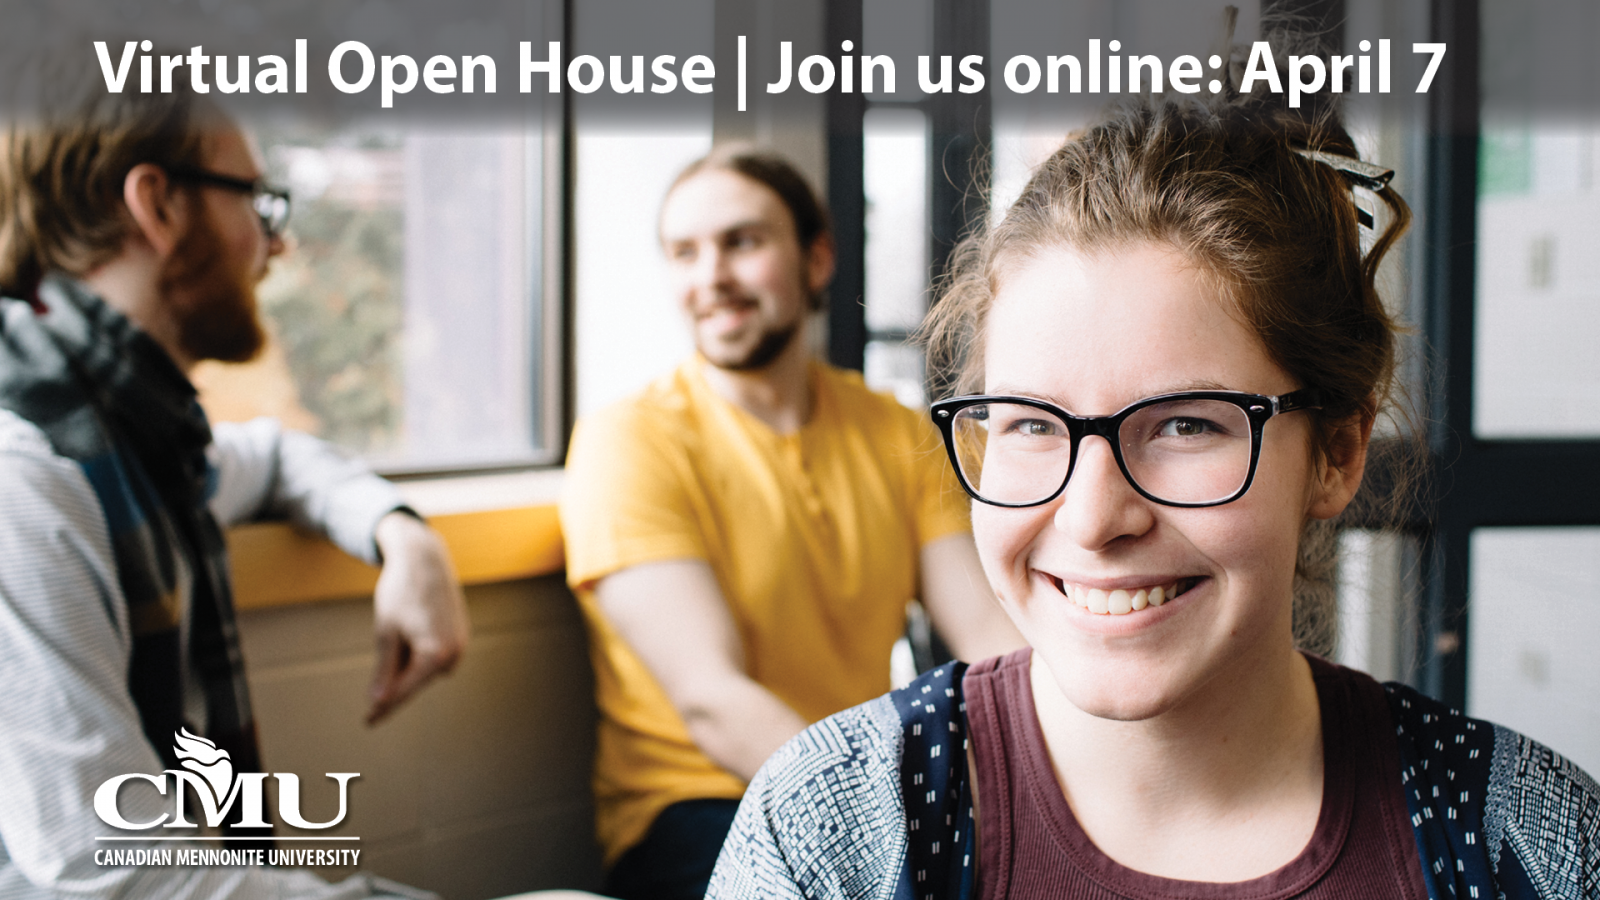 virtual open house banner image